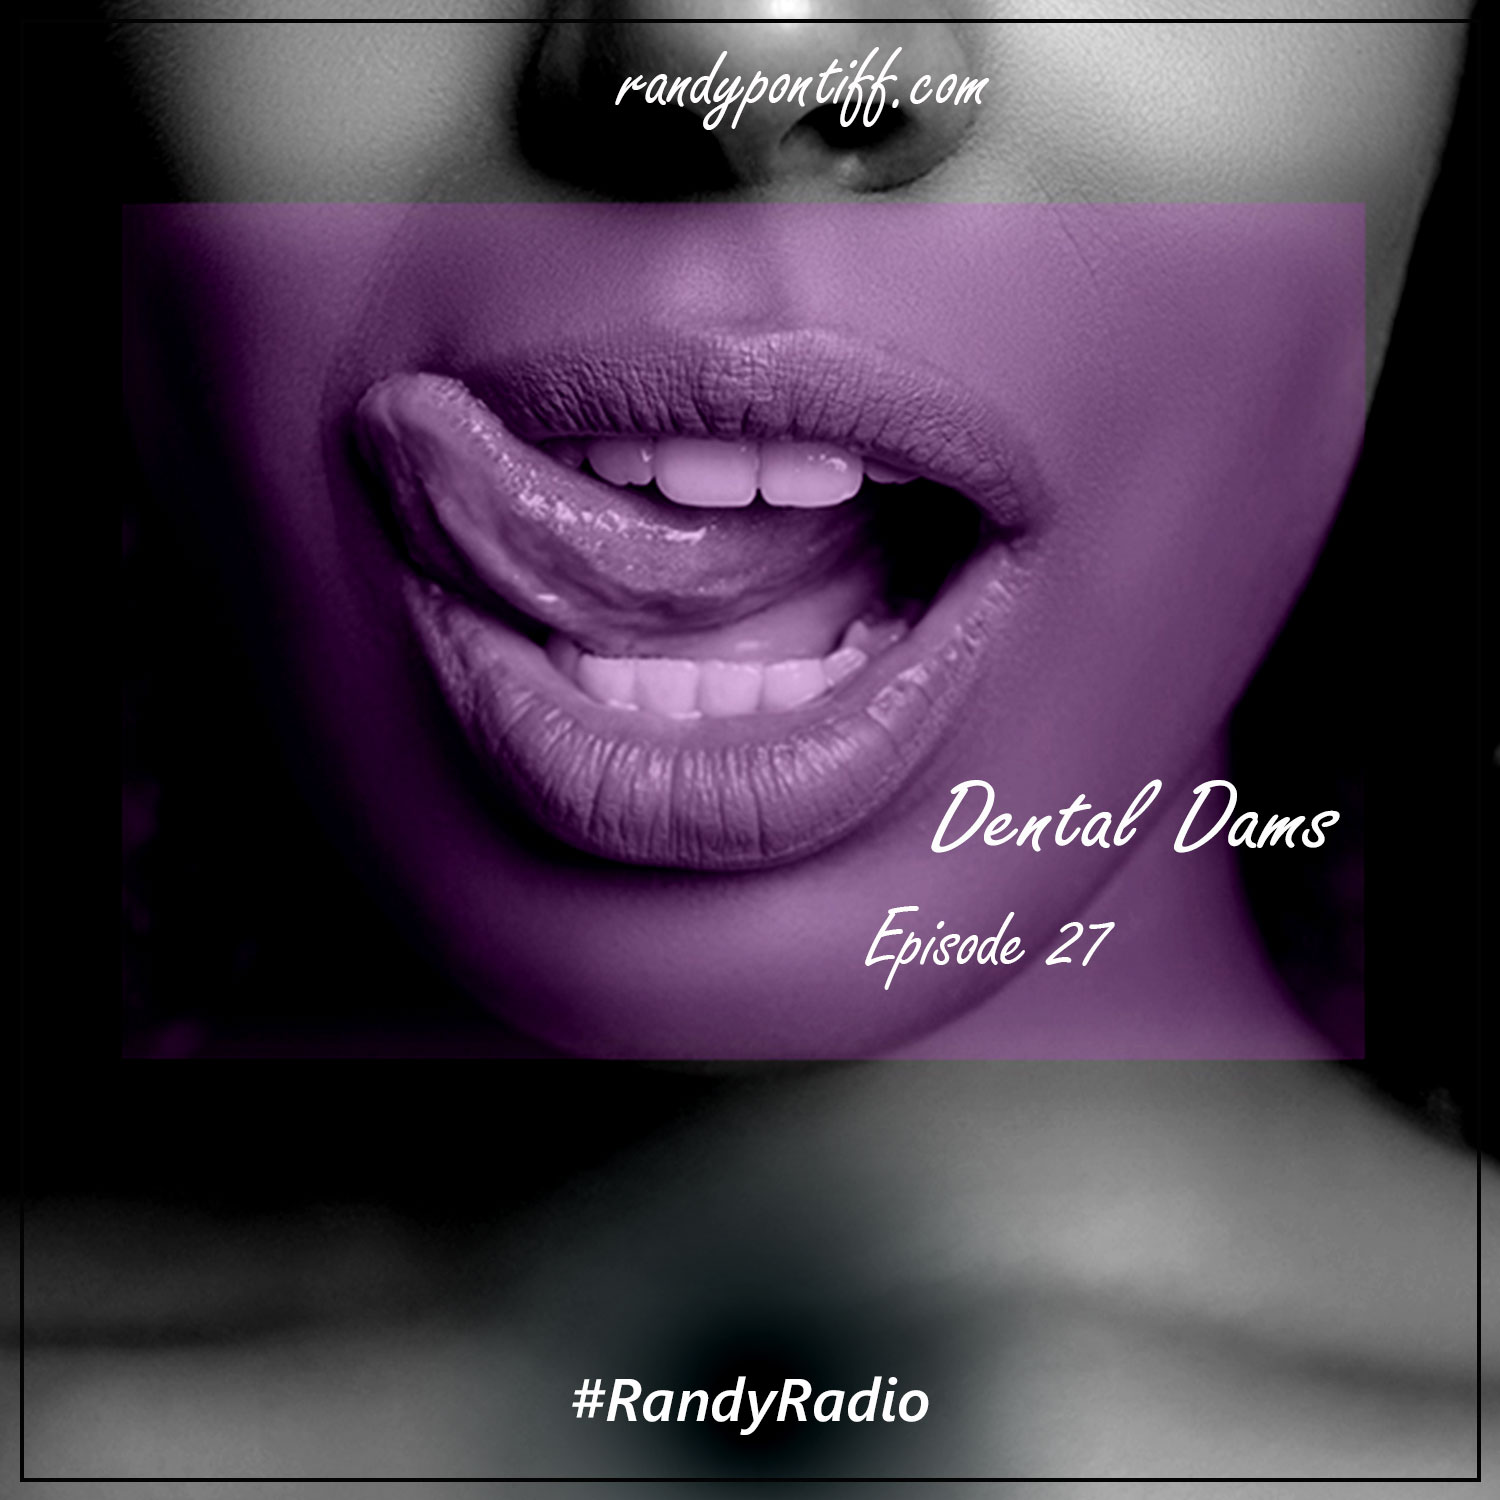 Randy Radio – Dental Dams